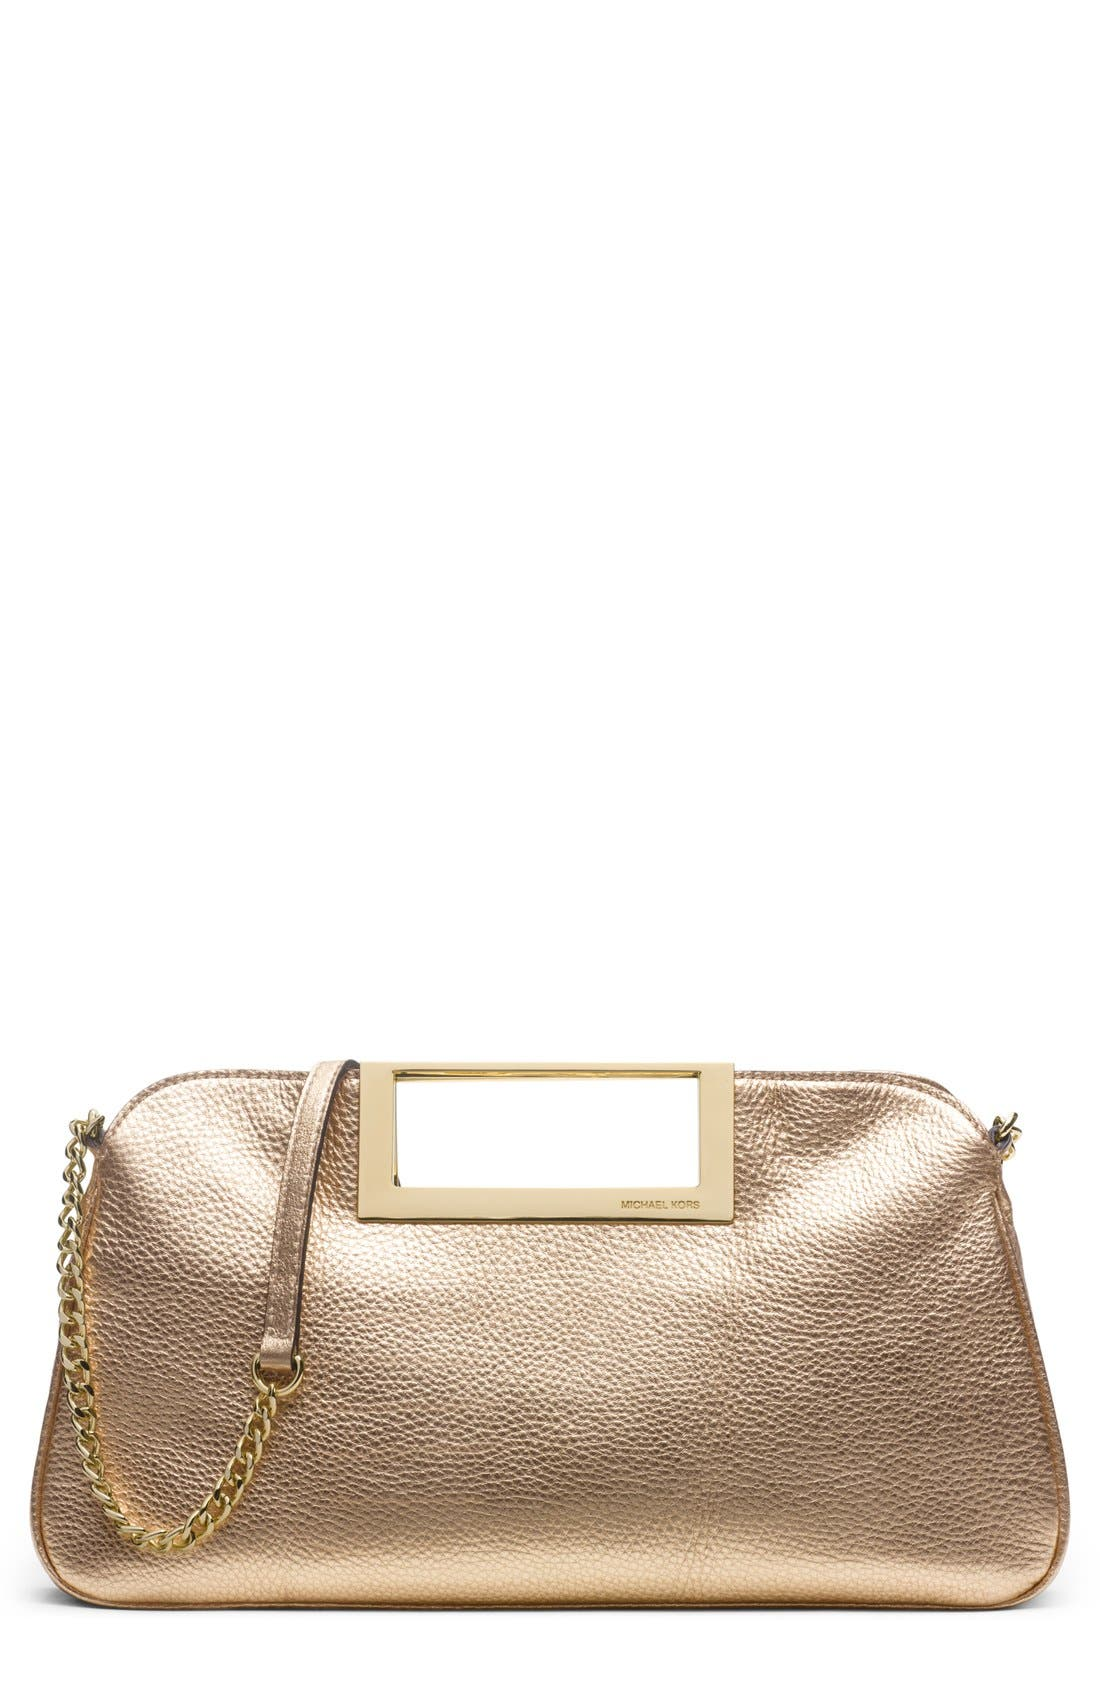 Alternate Image 1 Selected - MICHAEL Michael Kors Metallic Leather Clutch